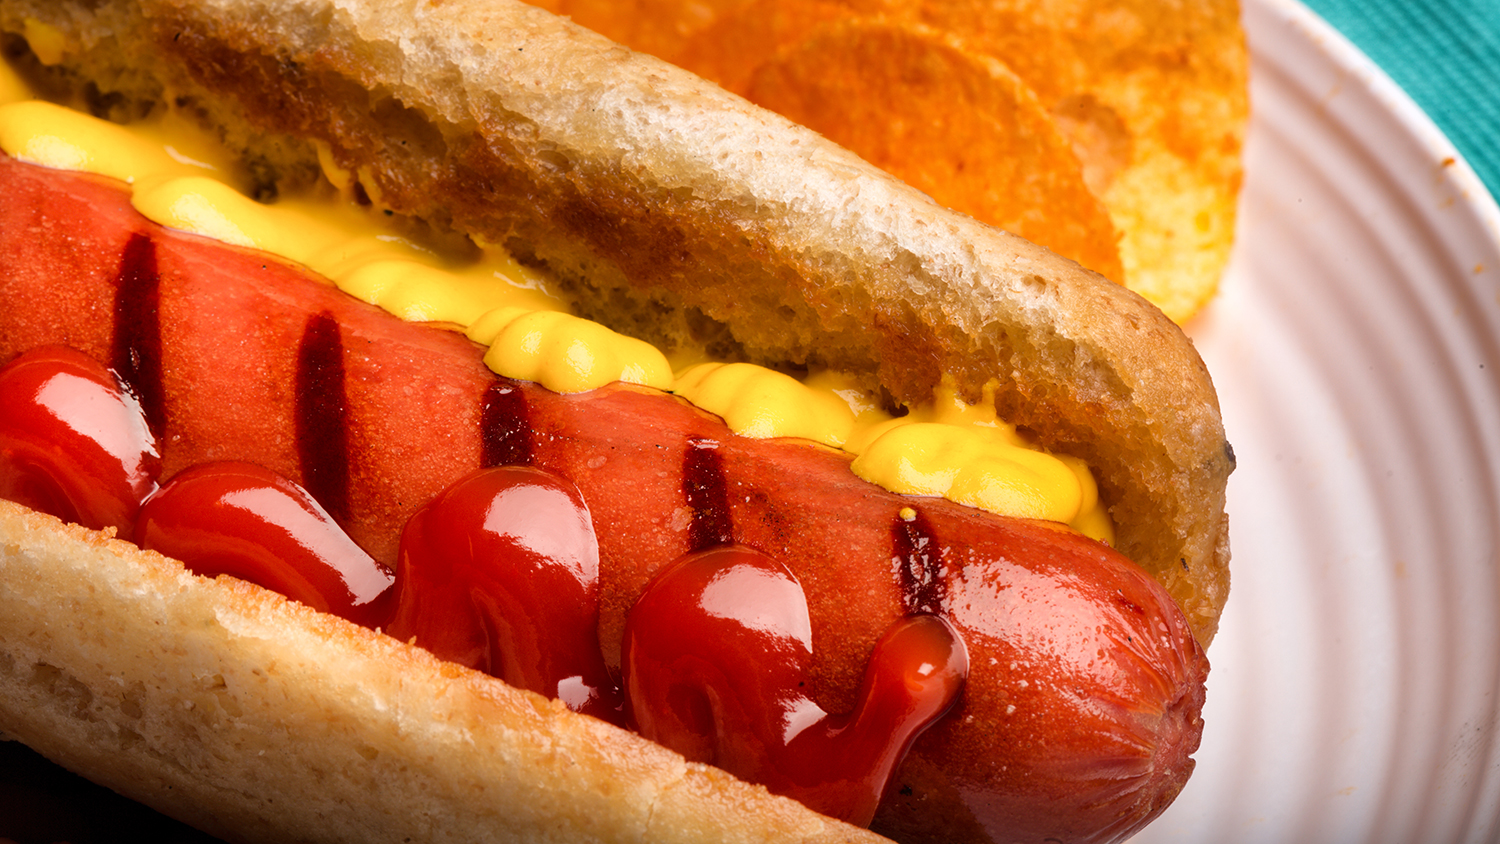 Our Products likewise Hot Dogs Oscar Mayer Turkey Nutrition y 7CT2eclEXimQd3aX 7Cum2U 7CvAcsAqjPR4FcVyhgfRcEQ8qgsoVmjl qxyA7lgek97bCT7Ylqzpnd4hu6C8iCWMw as well Hot Dog Prep Tips together with Show Picture additionally Calories Oscar Mayer Hot Dogs Wieners I133821. on oscar mayer meat wieners